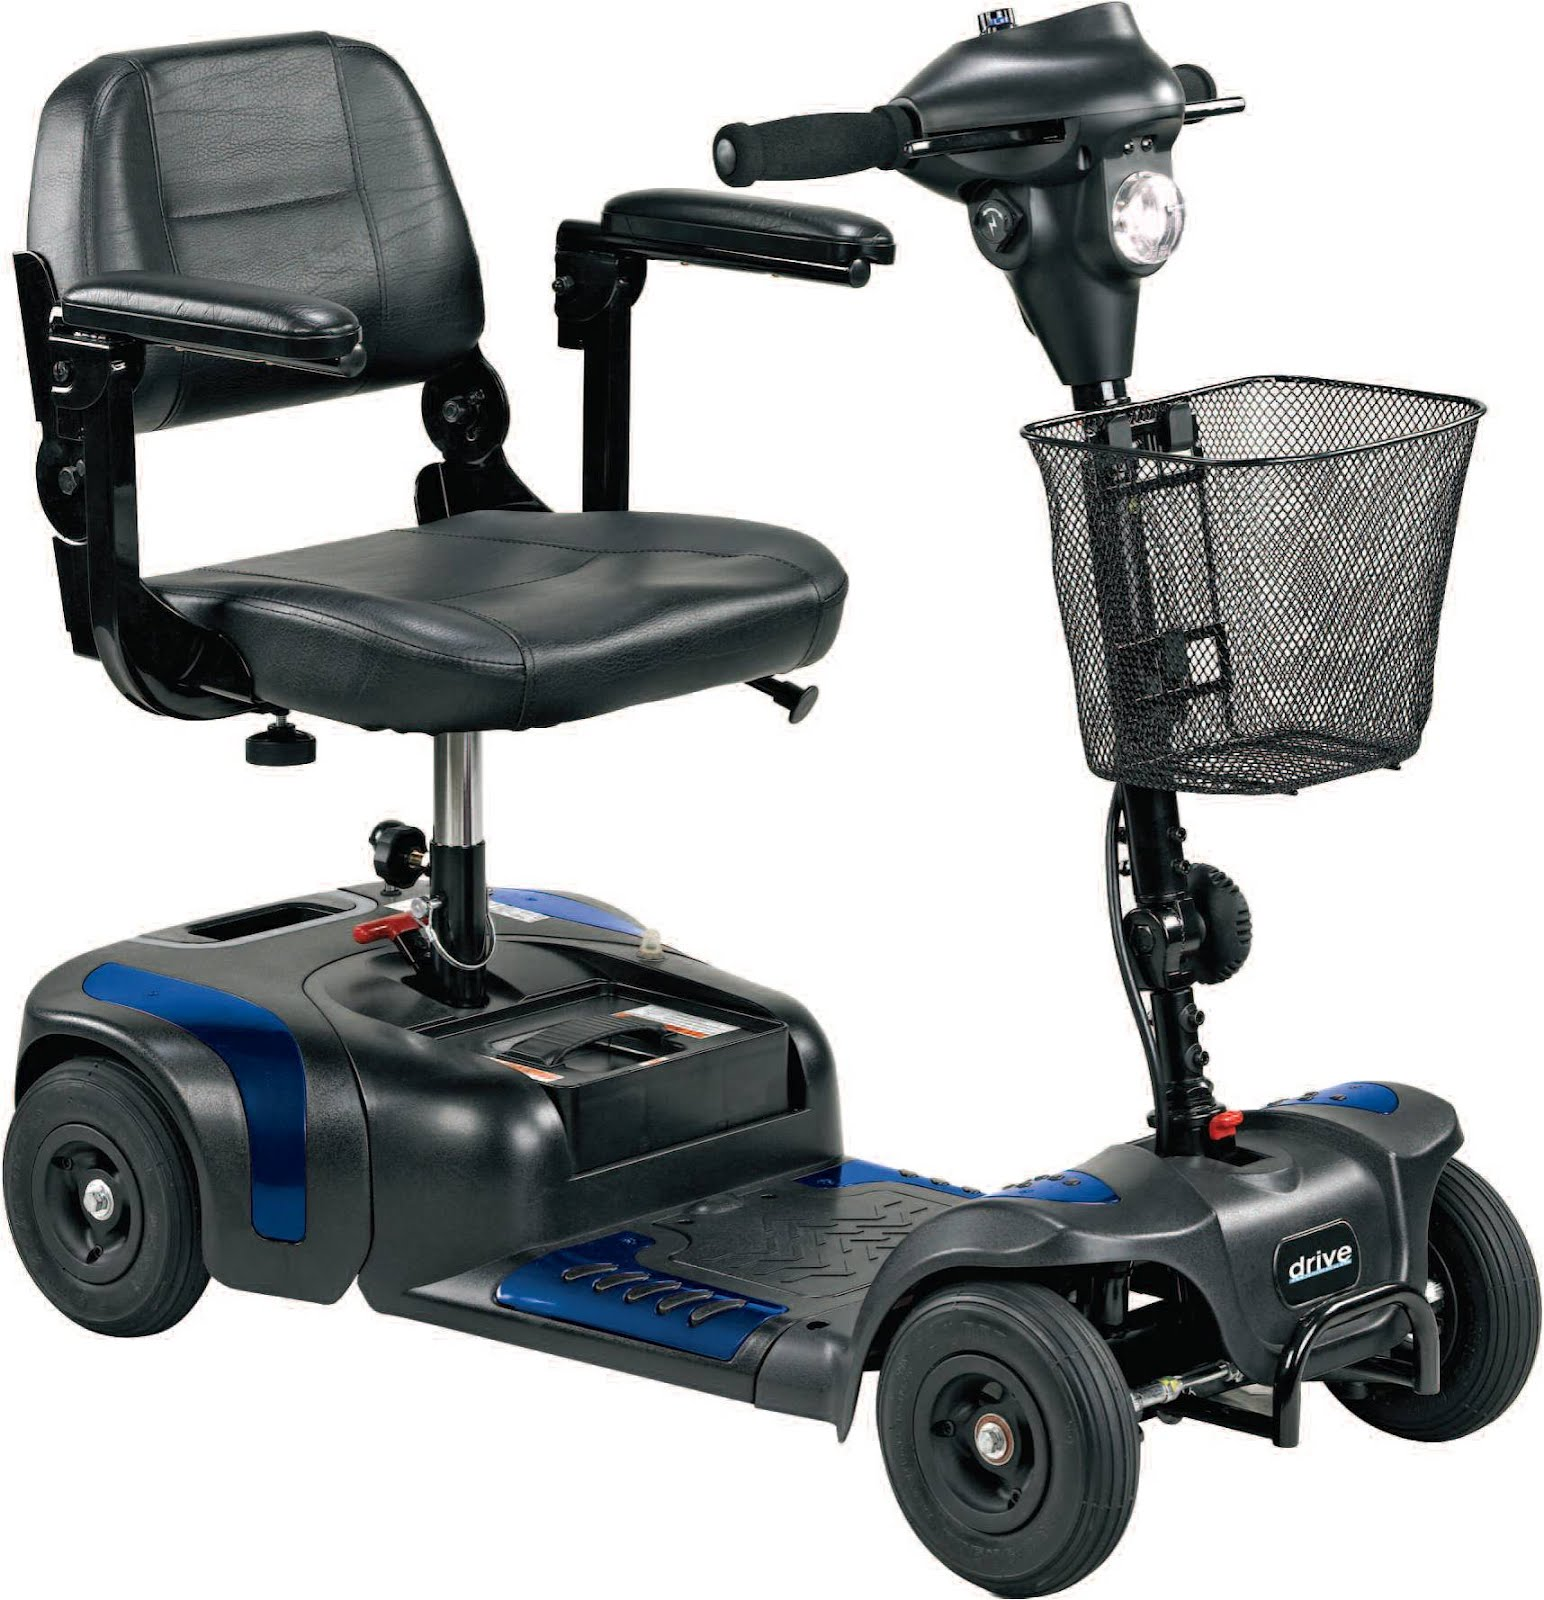 RENTAL OF WHEELCHAIR MOTORISED WHEELCHAIR AND MOBILITY SCOOTER